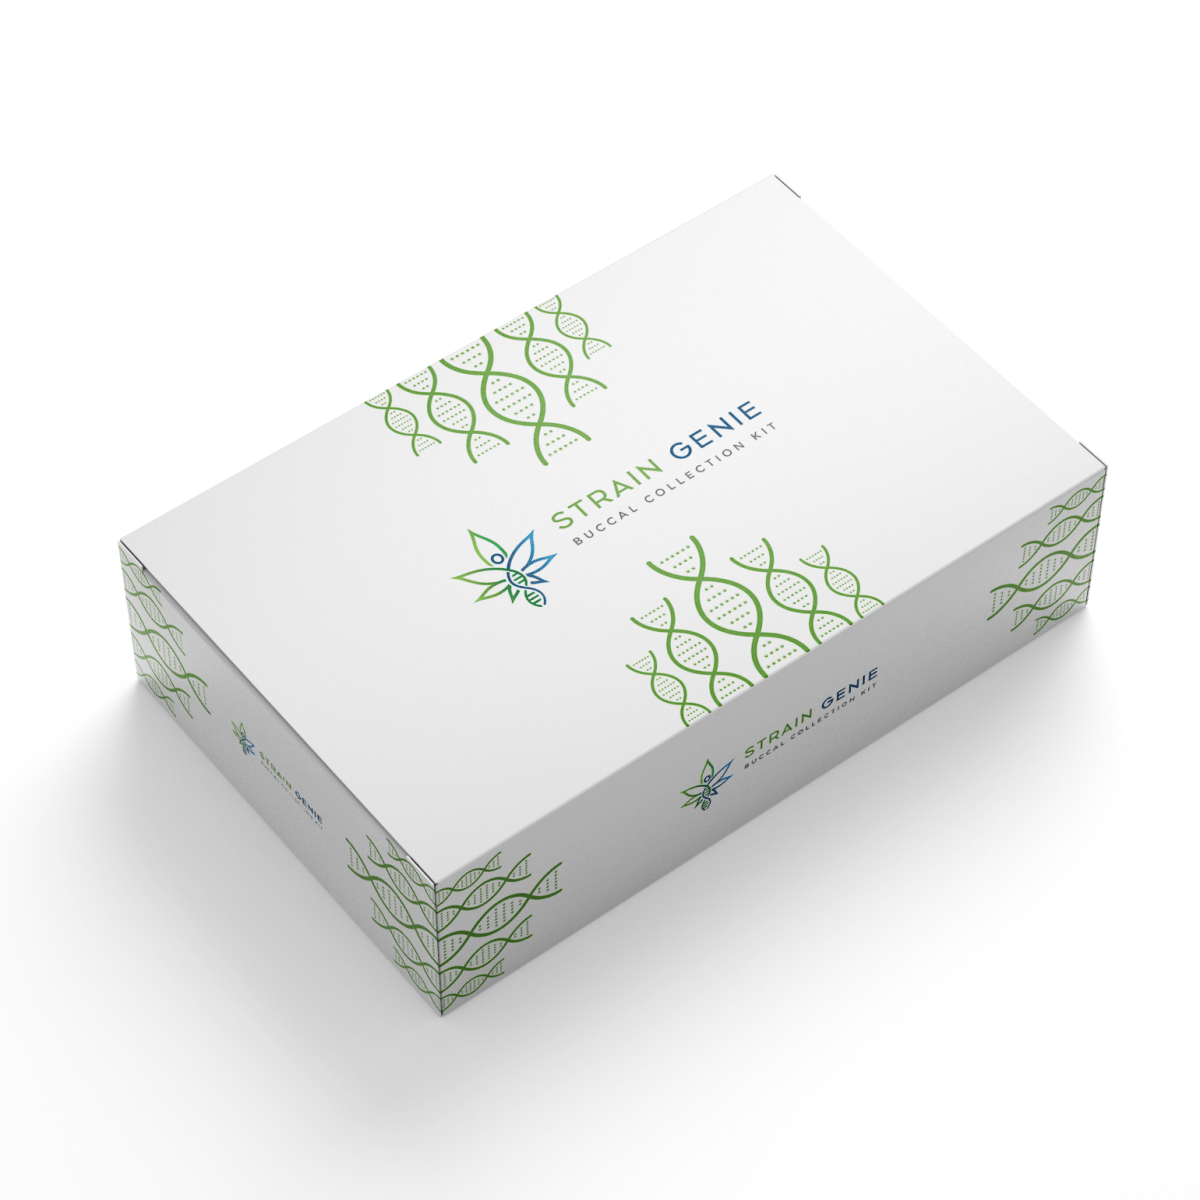 Strain Genie DNA Test Kit